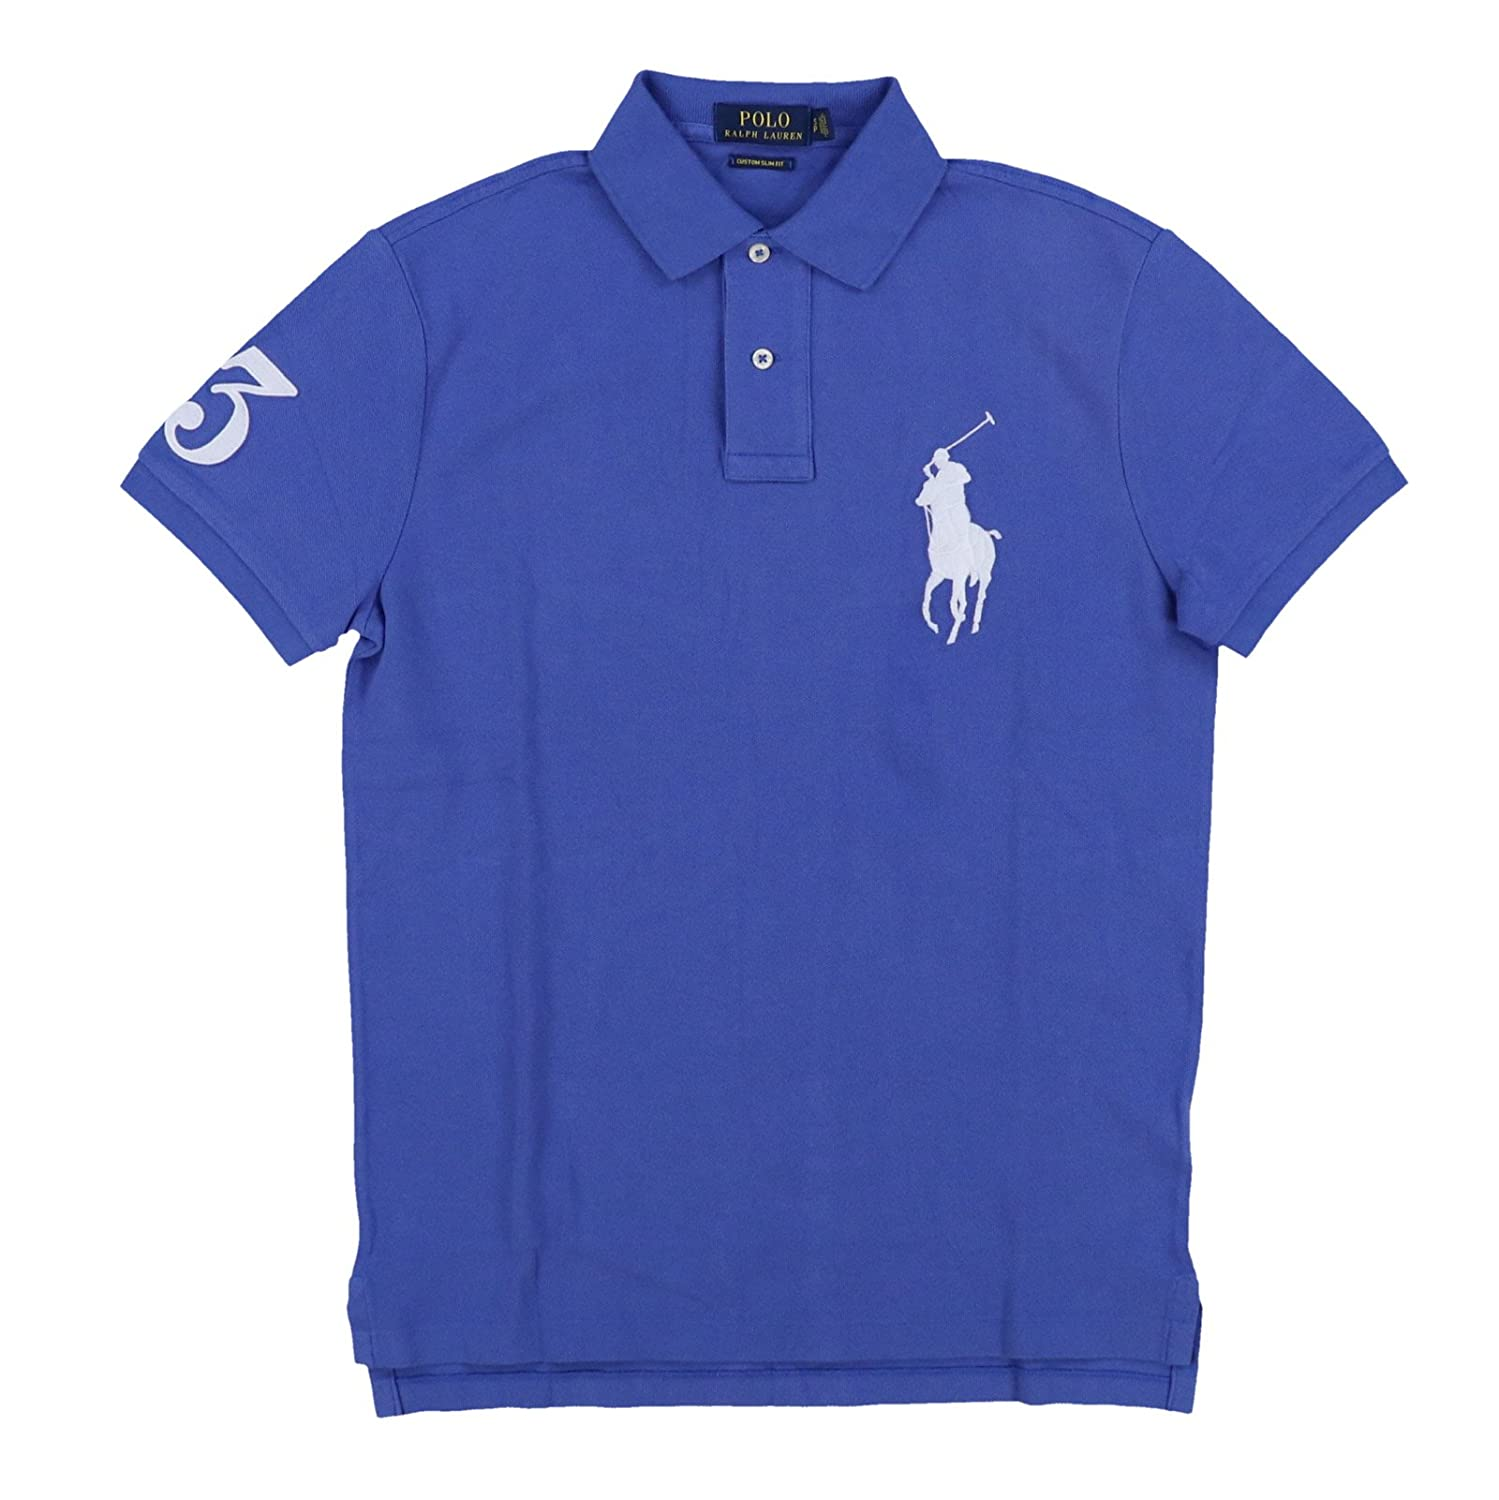 1d9e1da7a Polo Ralph Lauren Features the signature embroidered big pony logo. Custom  Slim Fit Ribbed armbands and collar. Uneven, vented hem